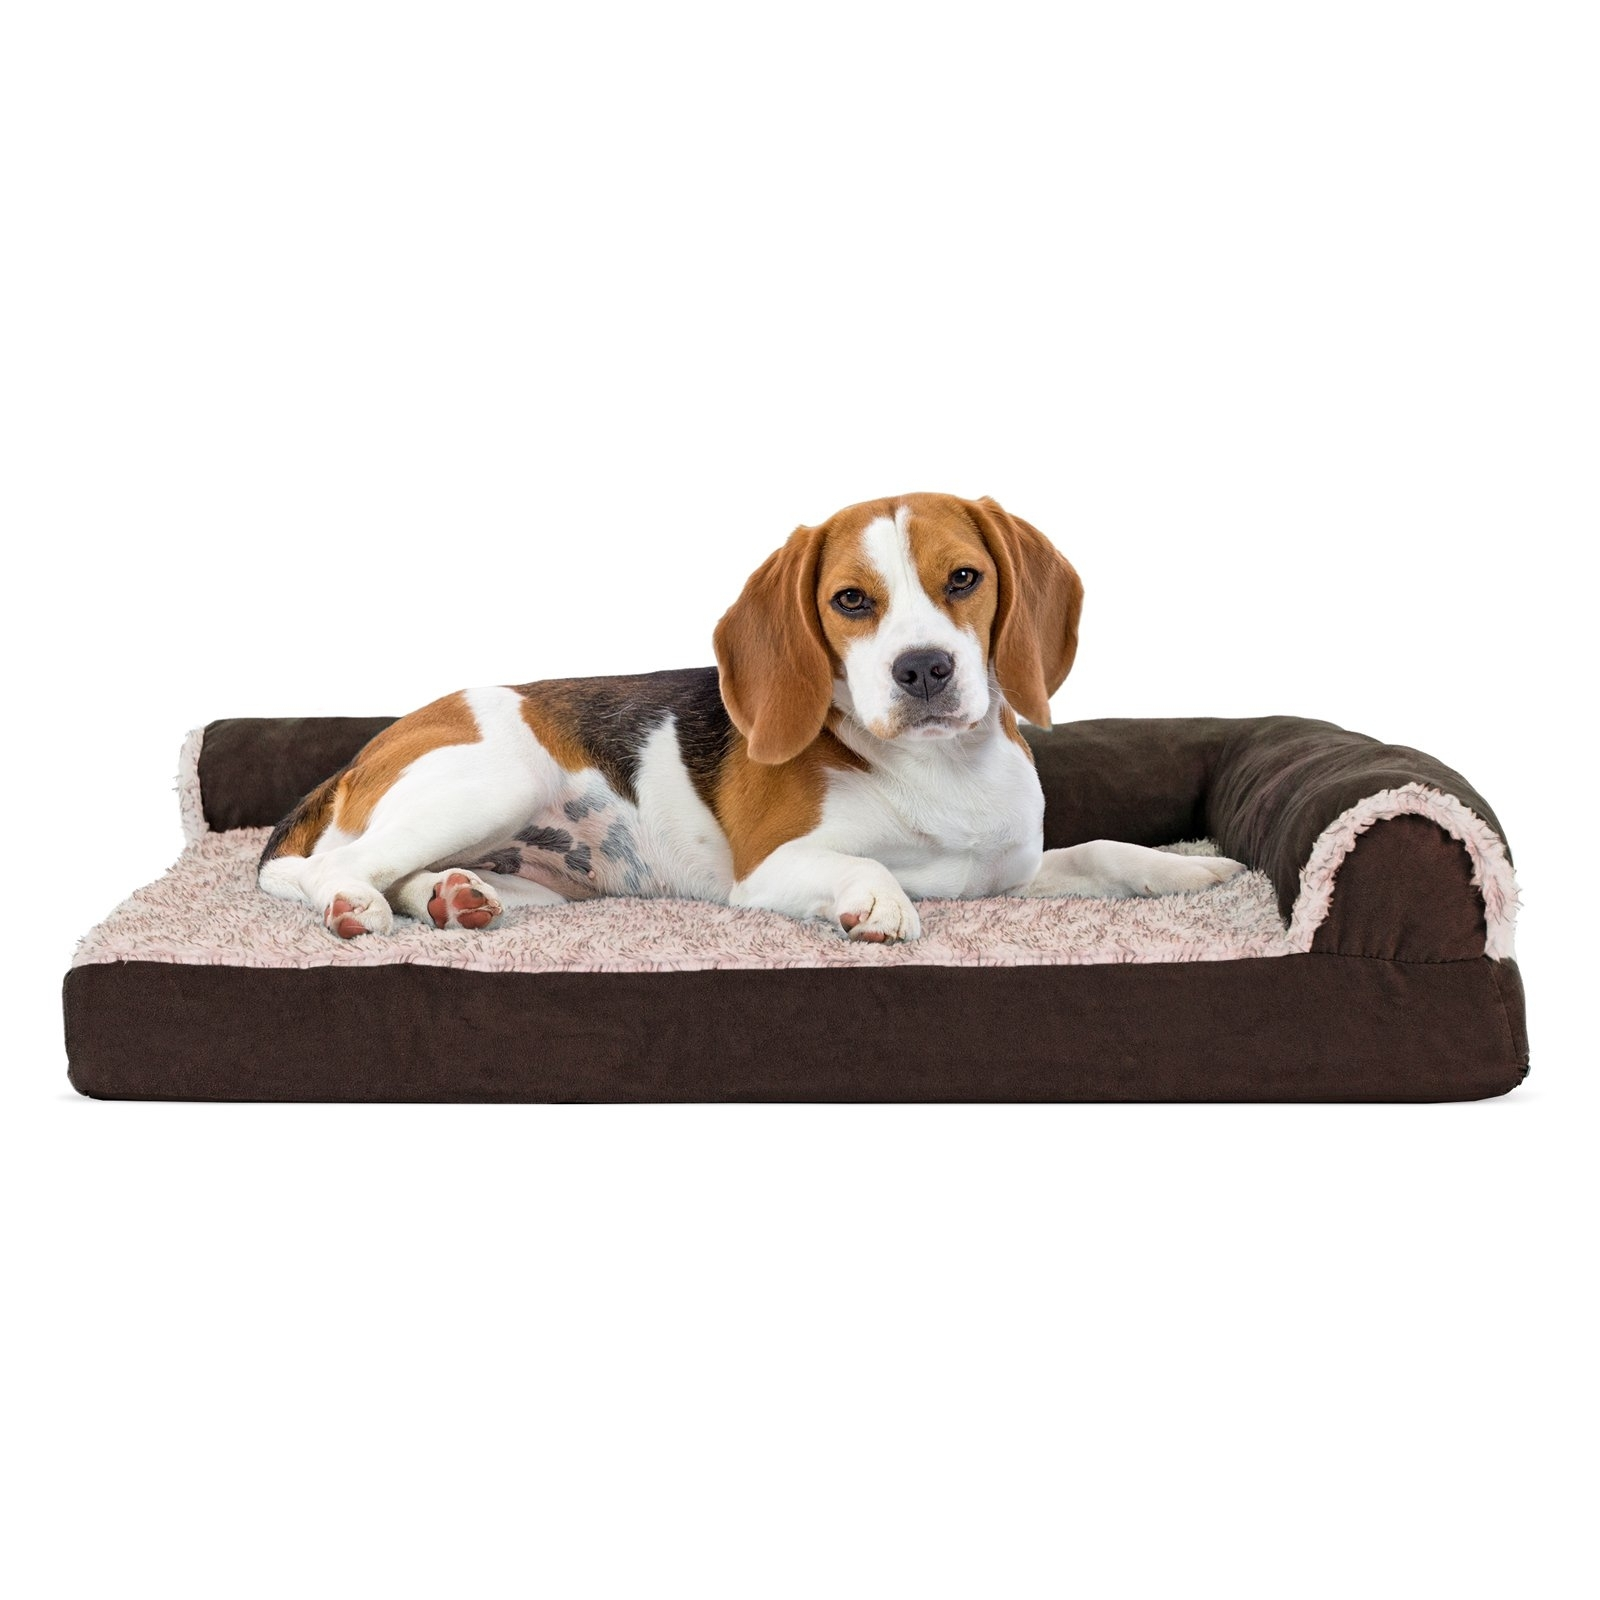 Furhaven Two Tone Faux Fur & Suede Orthopedic Deluxe Chaise Lounge Regarding Most Recently Released Dog Chaise Lounges (View 10 of 15)